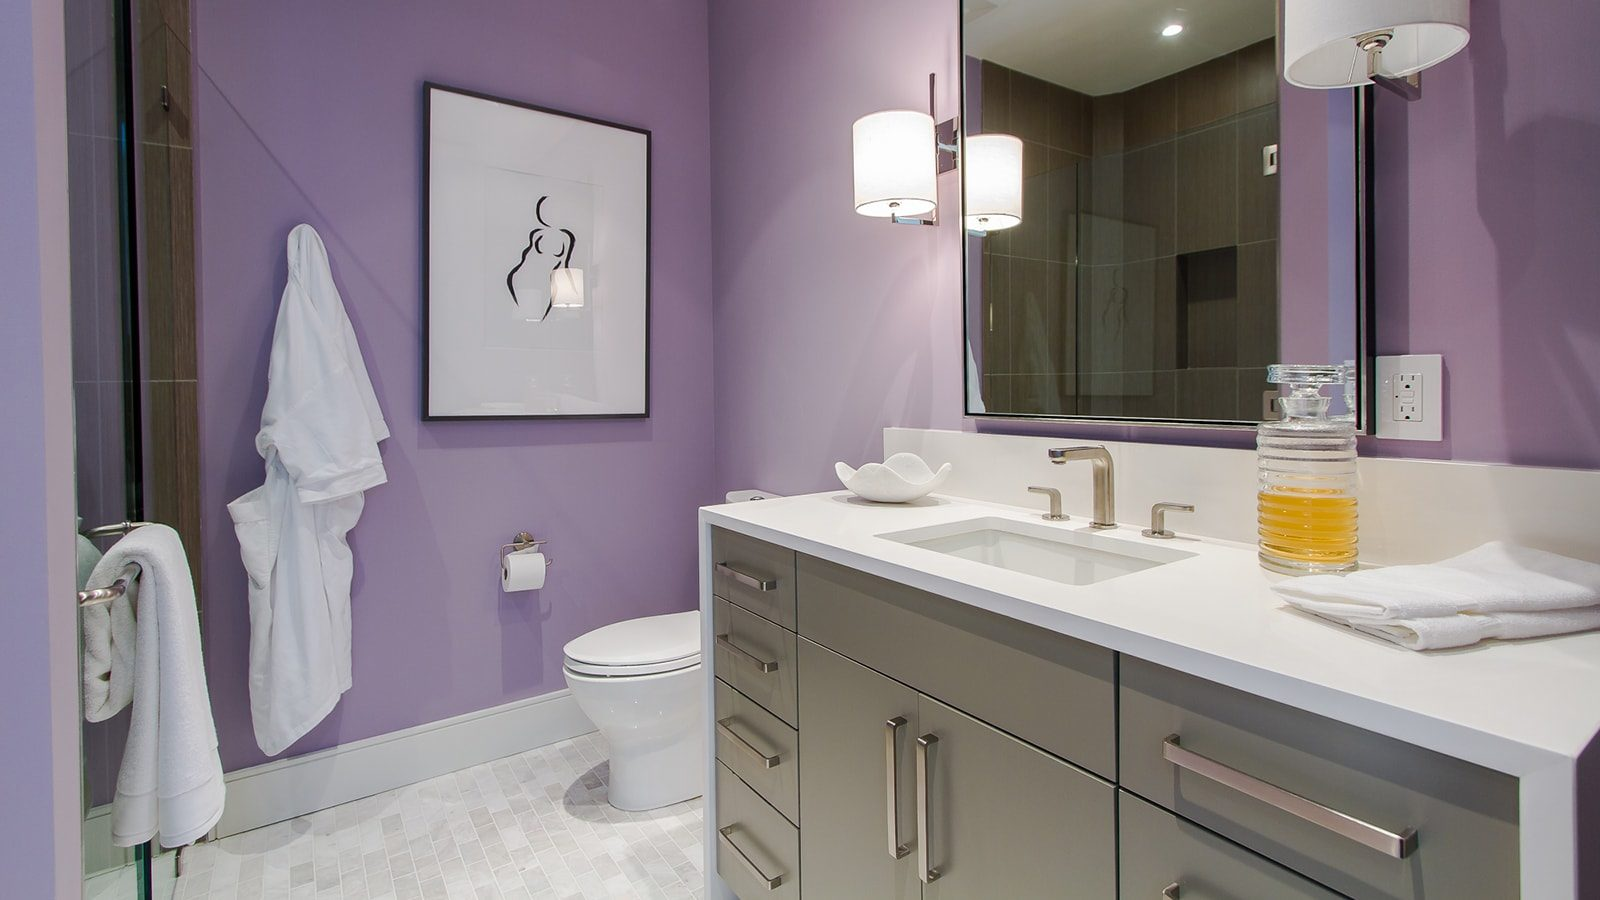 Modern bathroom with purple walls